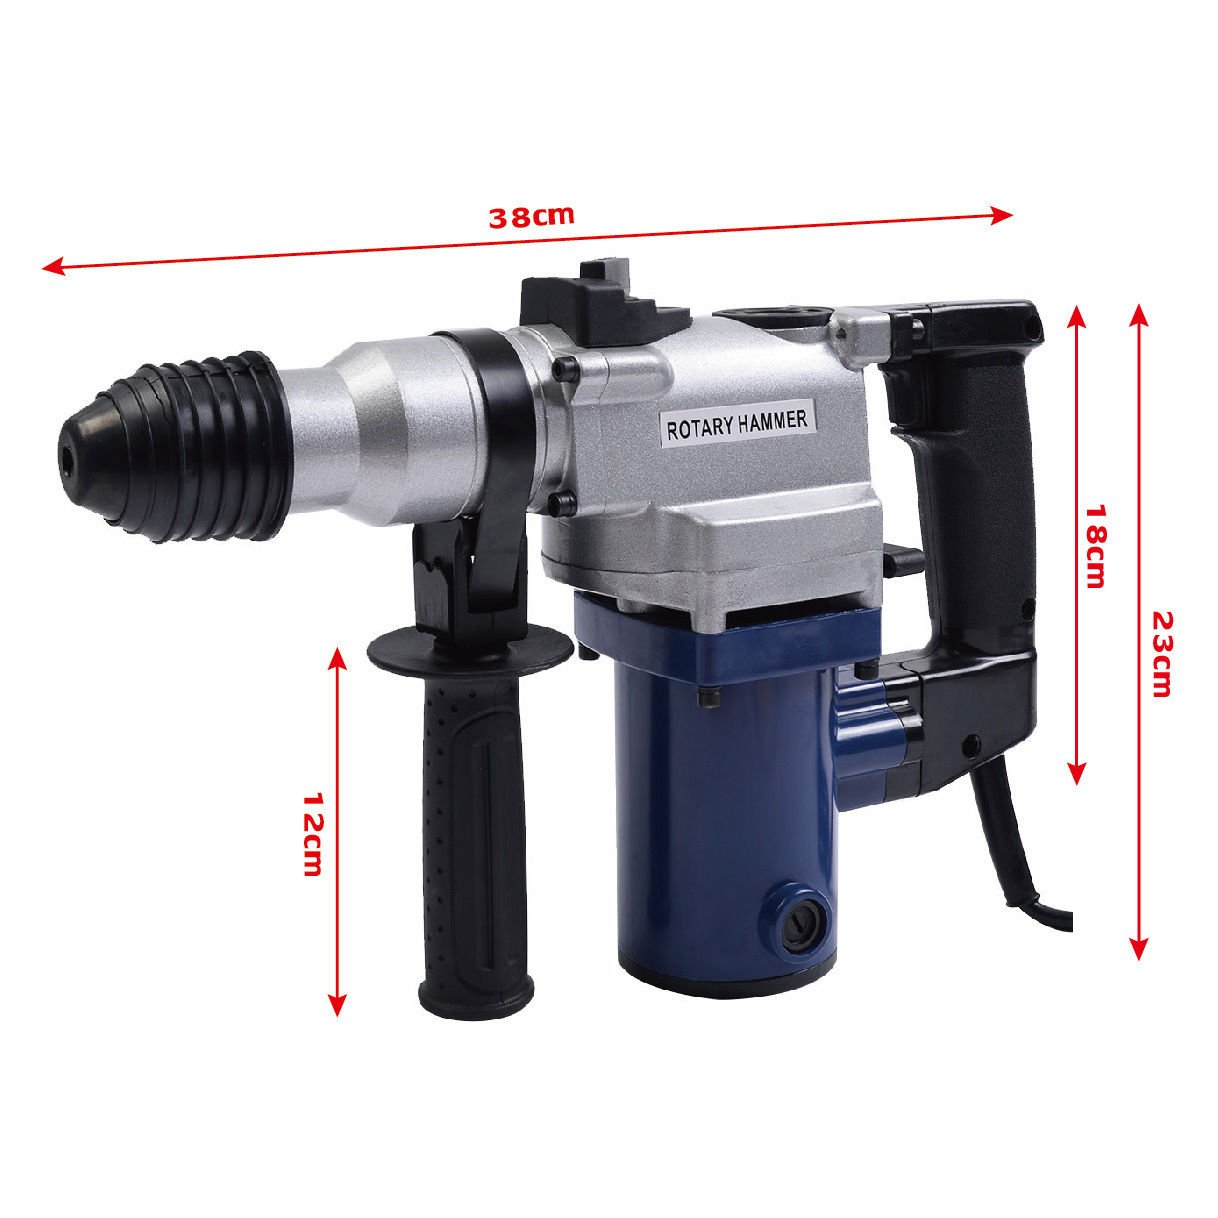 New MTN-G New 1'' Electric Rotary ROTO Hammer Drill SDS Concrete Chisel Kit w/ Bits by MTN Gearsmith (Image #4)